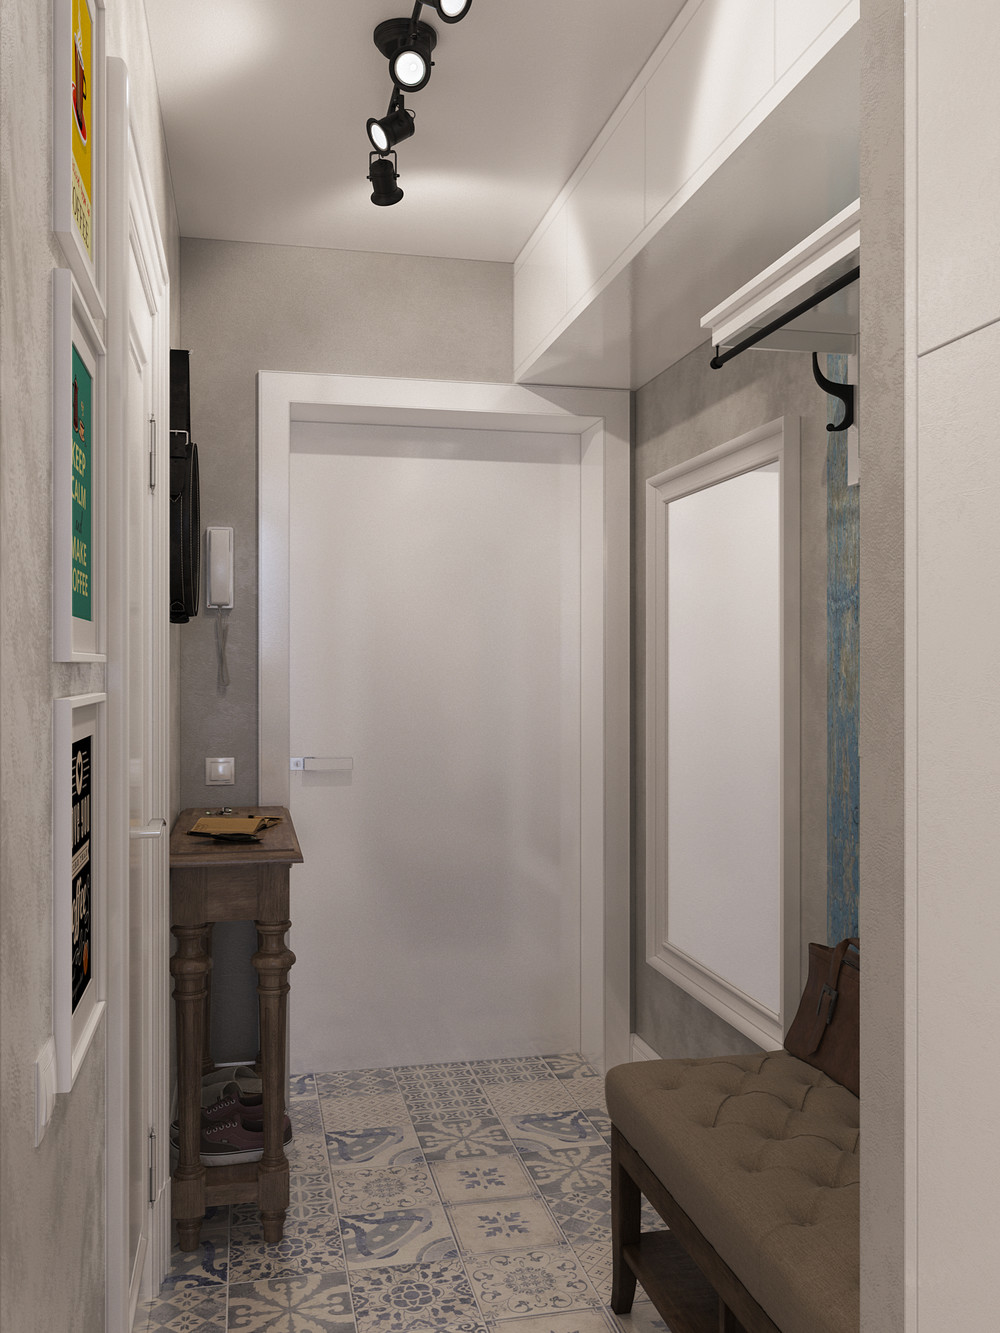 Designing For Super Small Spaces Micro Apartments